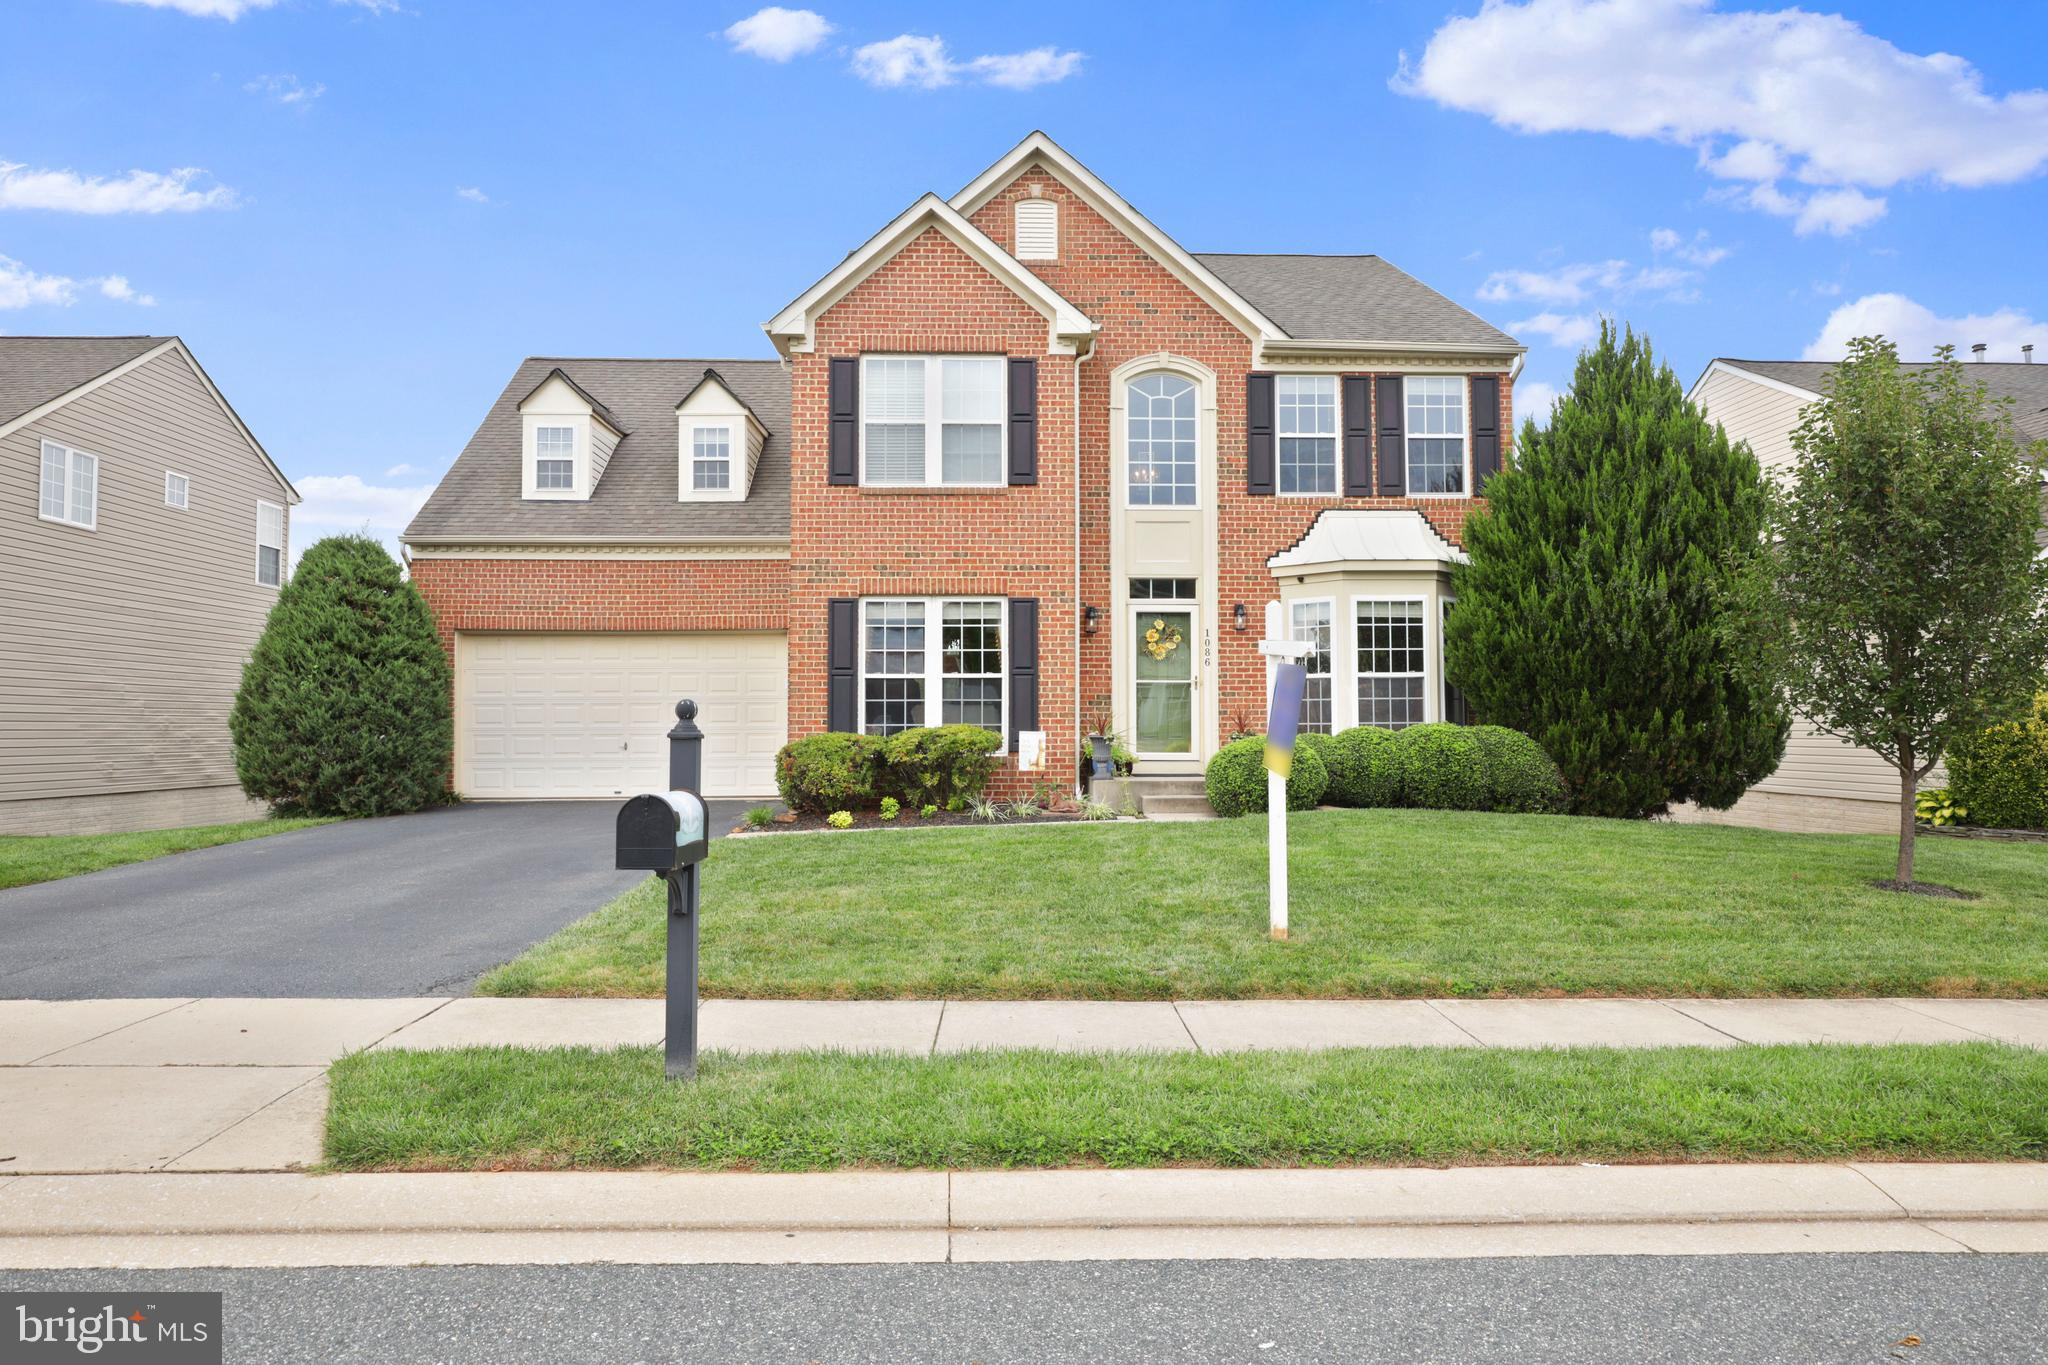 GREAT FAMILY HOME,  OPEN FLOOR PLAN WITH KITCHEN  IN THE CENTER,  SUN  ROOM  BUMPOUT TO REAR,   FAMI